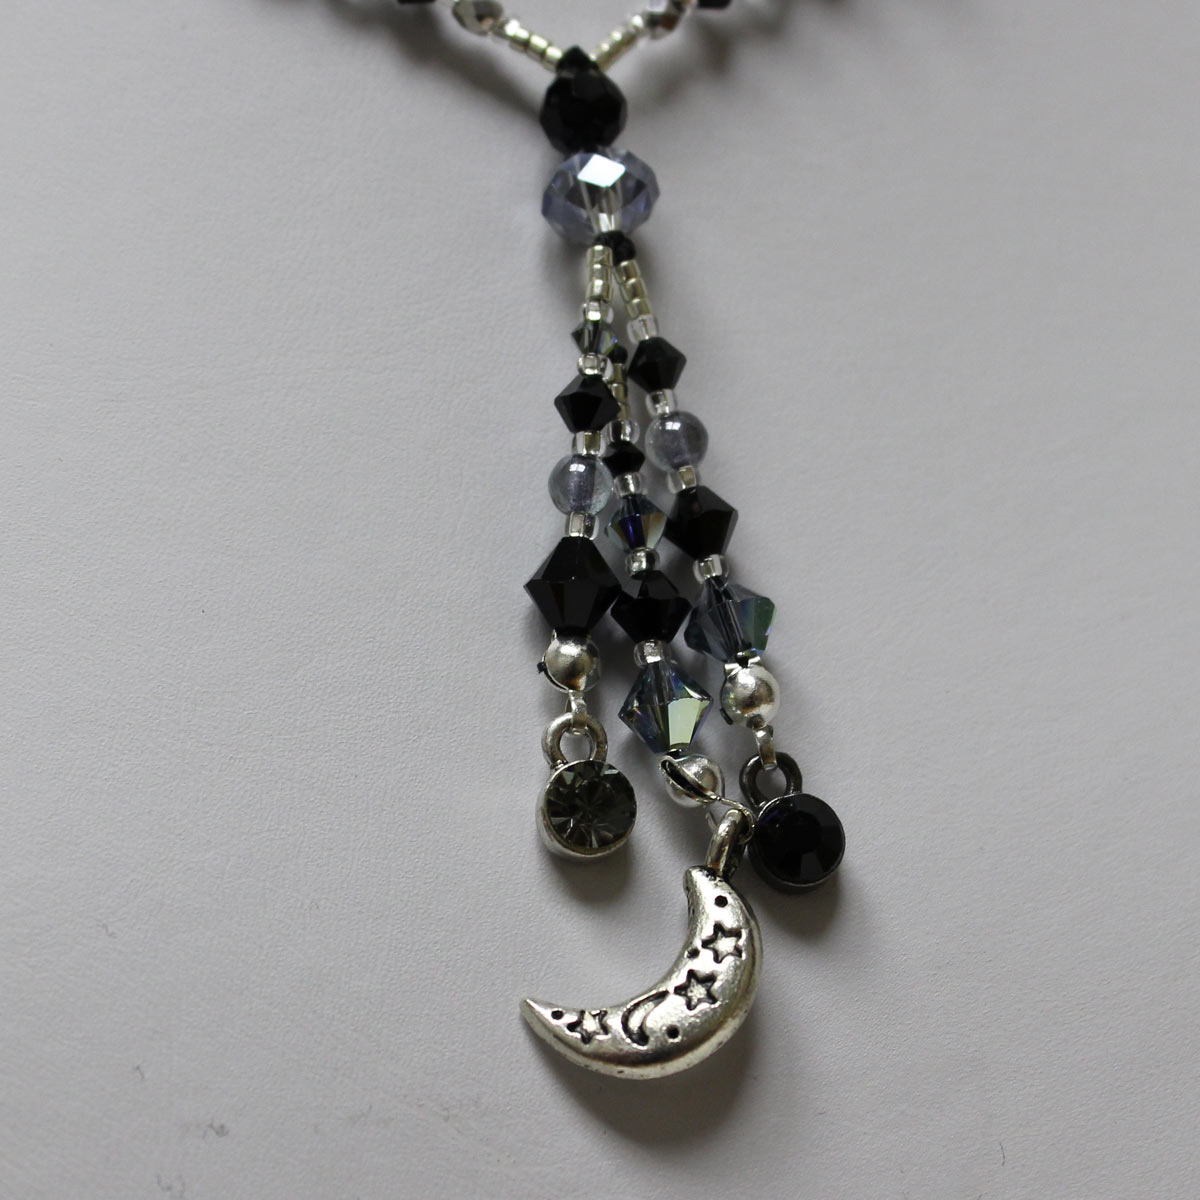 Half Moon Charm Necklace #2218